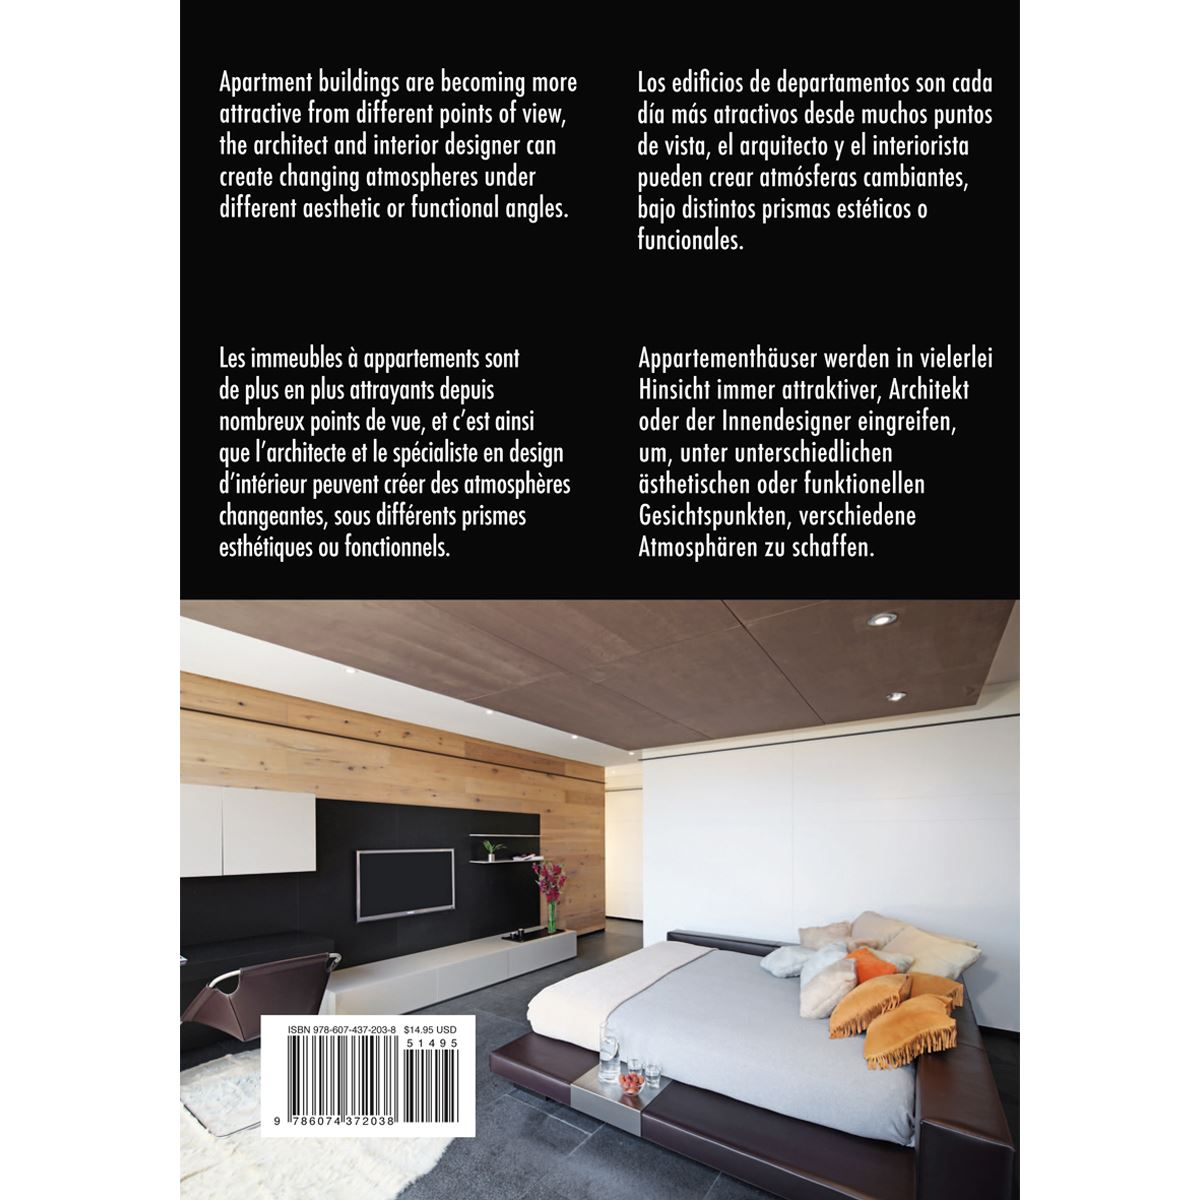 Design lofts y apartamentos Libro - Sanborns